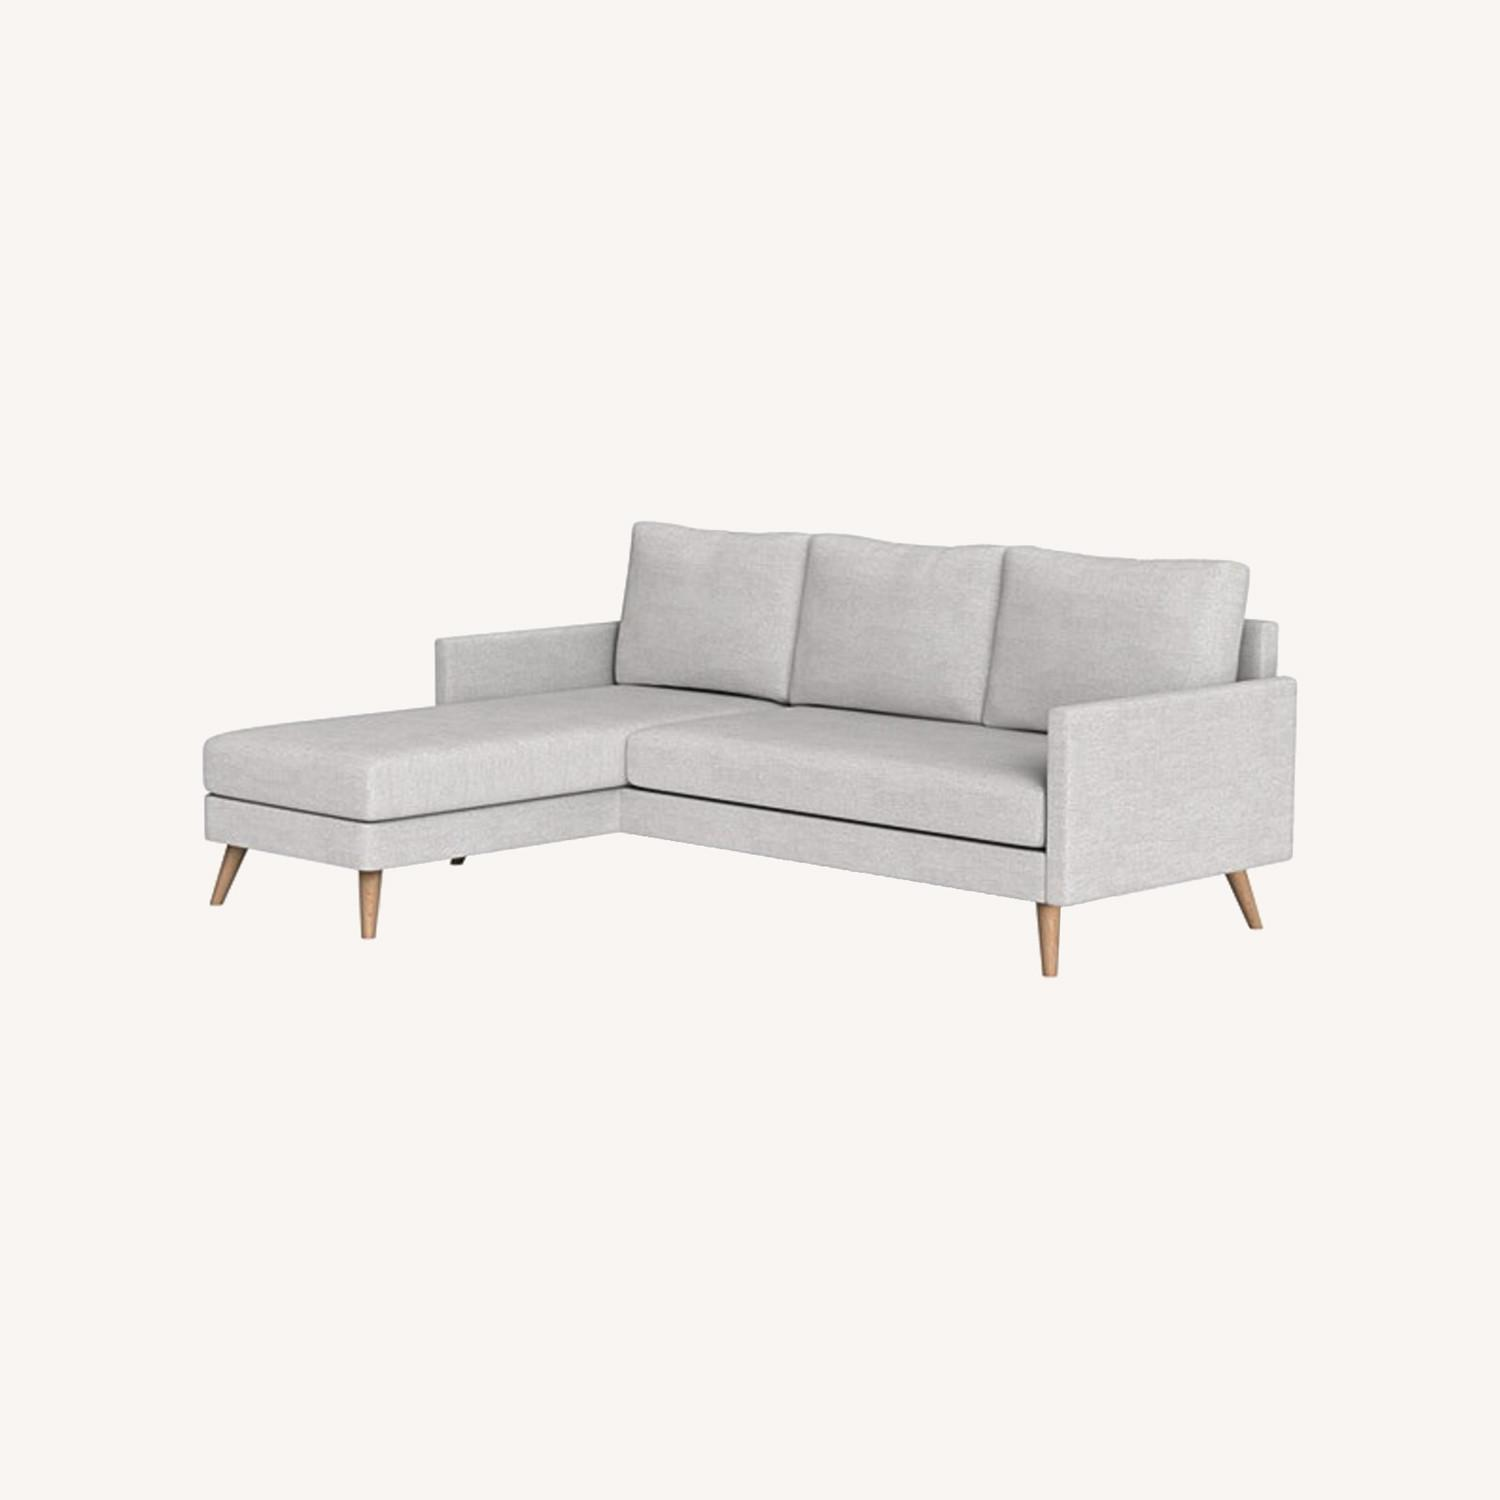 Inside Weather Custom Issa Sectional in Mist - image-0